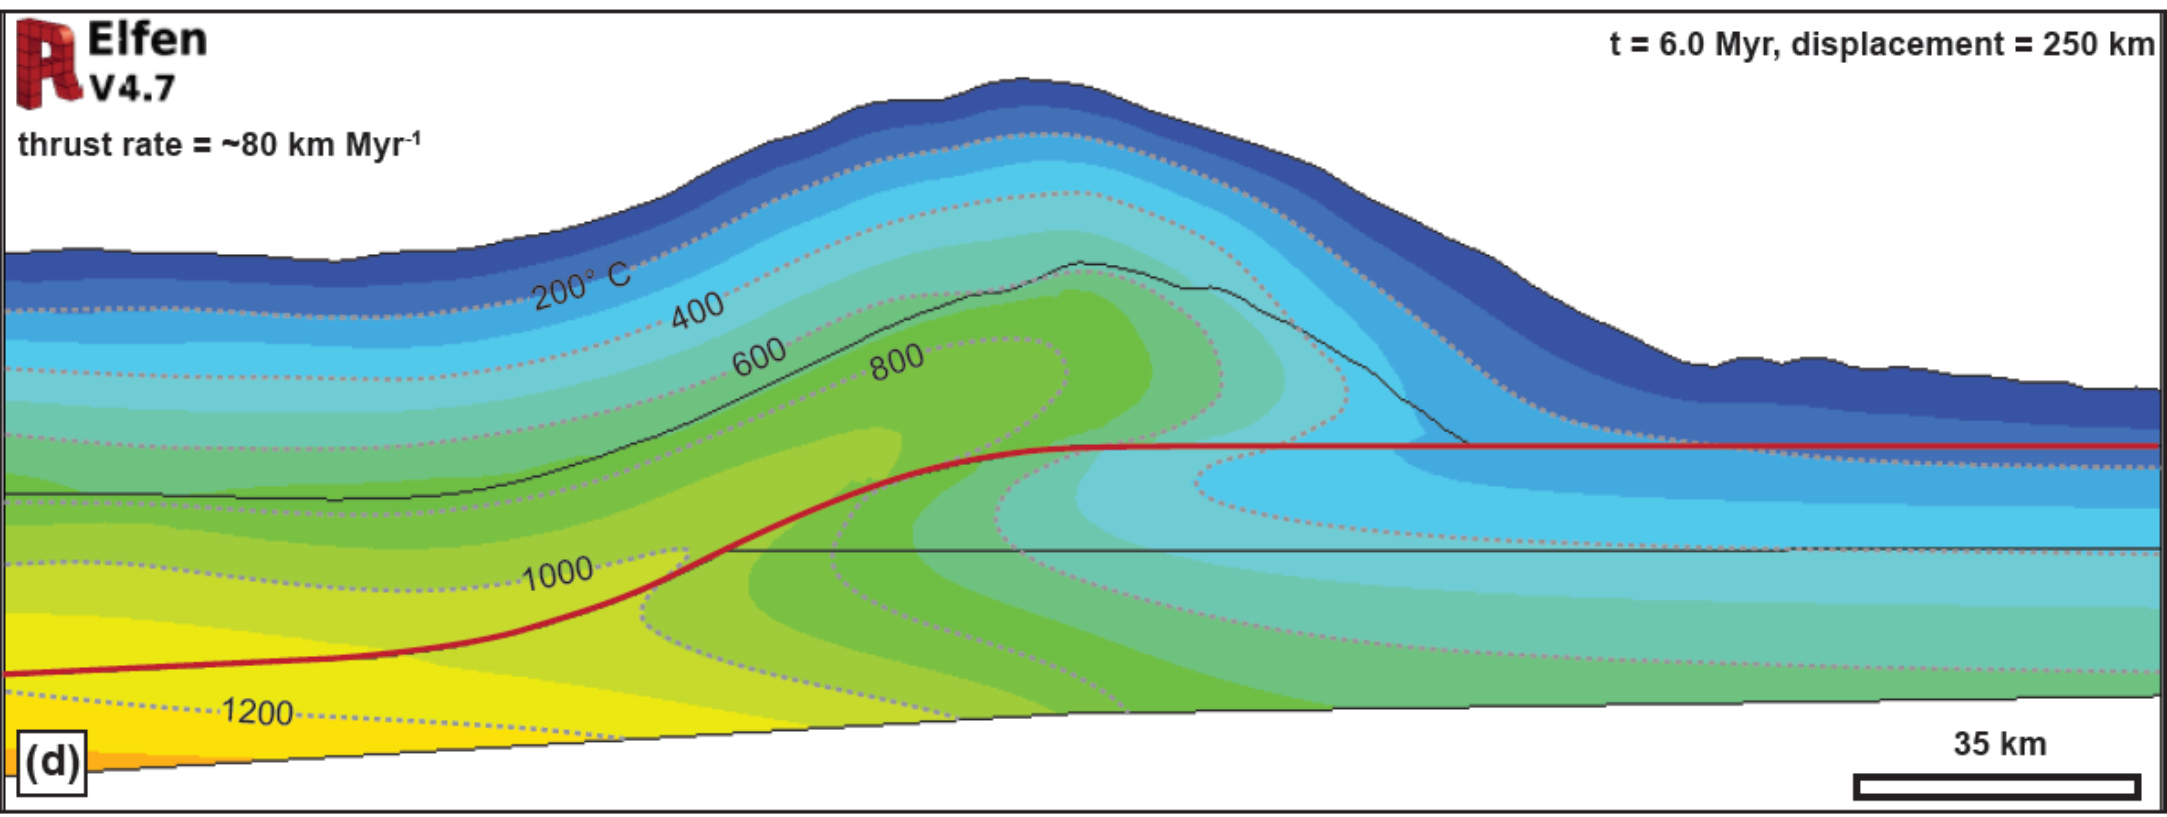 Nodal temperature results of a finite-element model of a tapered thrust wedge with single fault. In this model, the maximum thrust rate is ~80 km/Myr and the thermal distribution shown is after 6.0 Myr of motion and a total lateral (right-directed) displacement of 250 km. Deformation of the isotherms is the result of very rapid thrusting, which also results in footwall heating at rates up to 160° C/Myr. Although this model yields some first-order constraints on footwall heating rates, it lacks the influence of key processes such as erosion, mechanical weakness due to heating, and isostasy, all of which are currently being developed in our group. Figure modified from Thigpen et al. (accepted) manuscript in GSA Special Publication on Linkages and Feedbacks in Orogenic Systems.